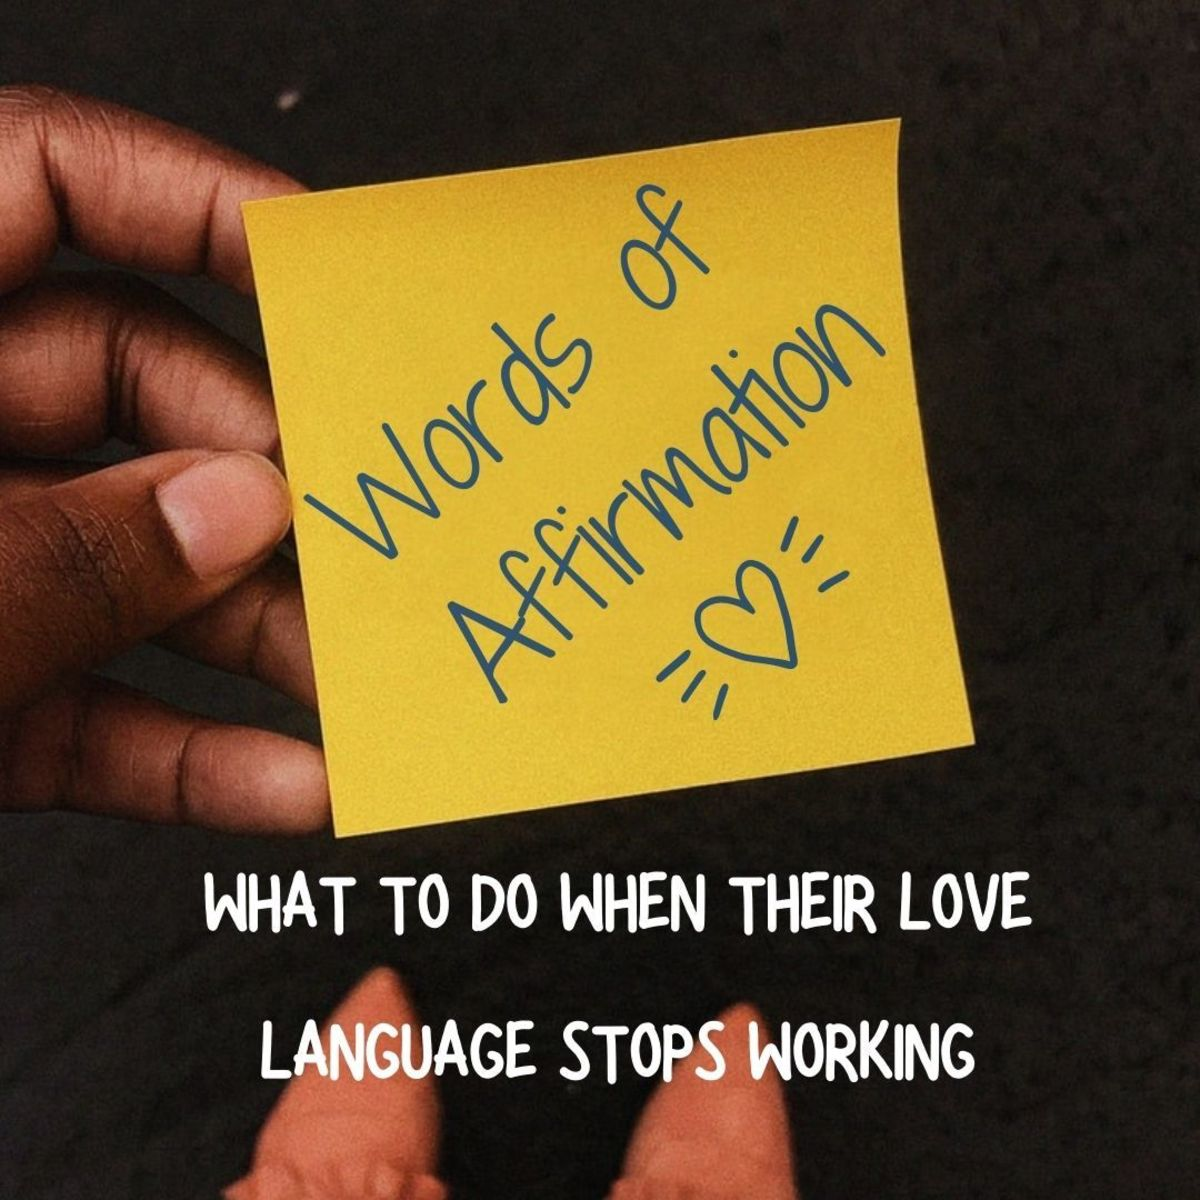 If you want to use words of affirmation with your partner, it's crucial to understand how it makes them feel.